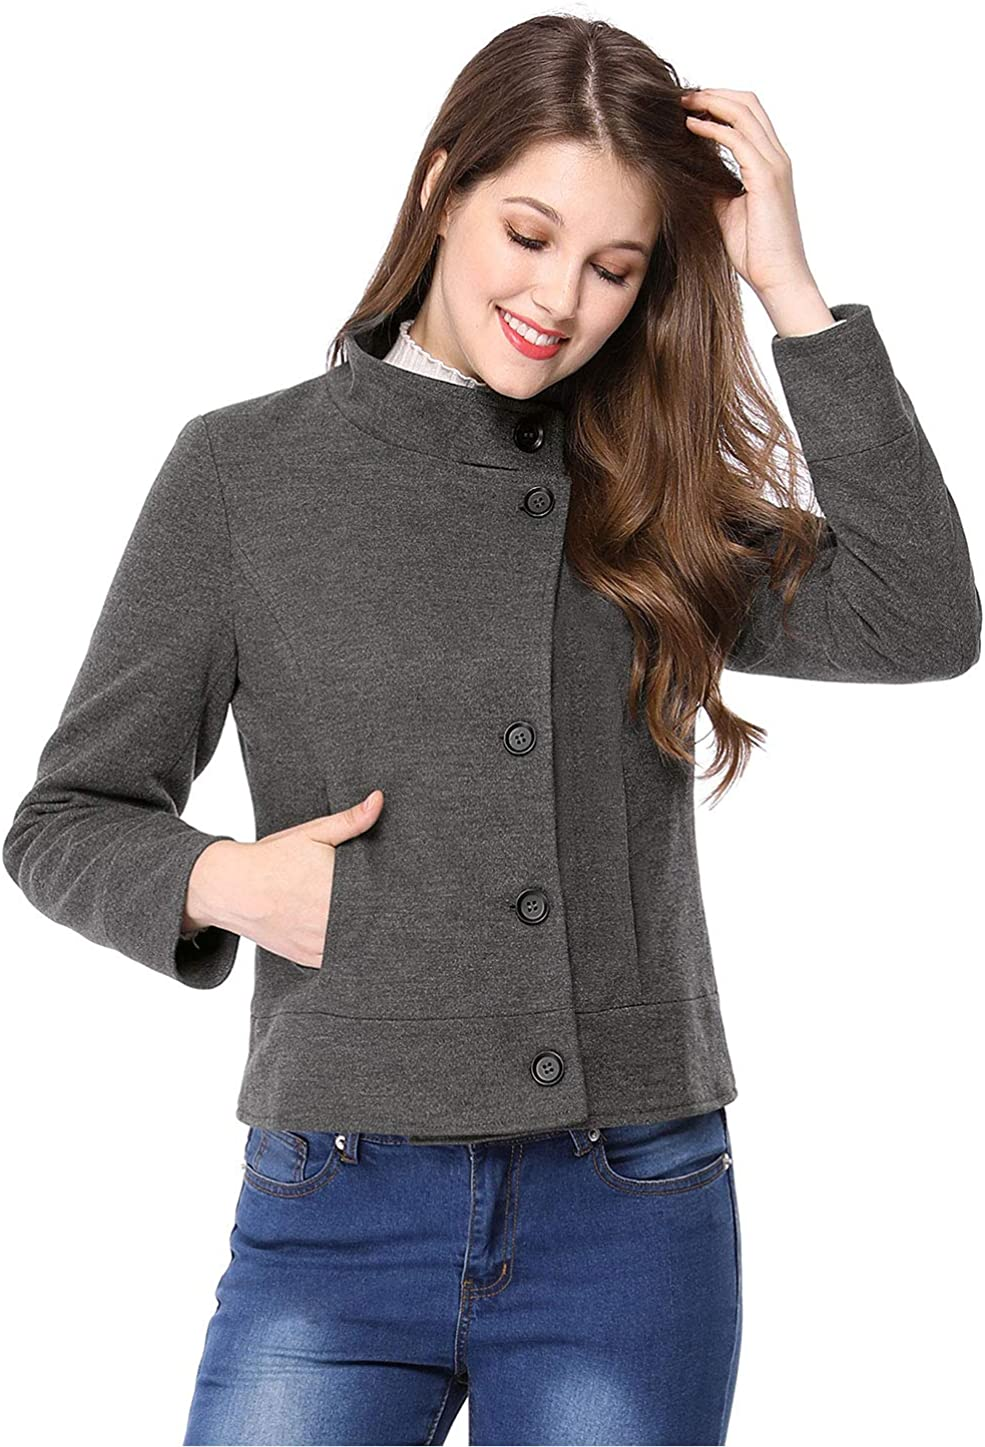 Allegra Albuquerque Mall K Women's Stand Collar Breasted Pocket Slant Single A surprise price is realized Coat